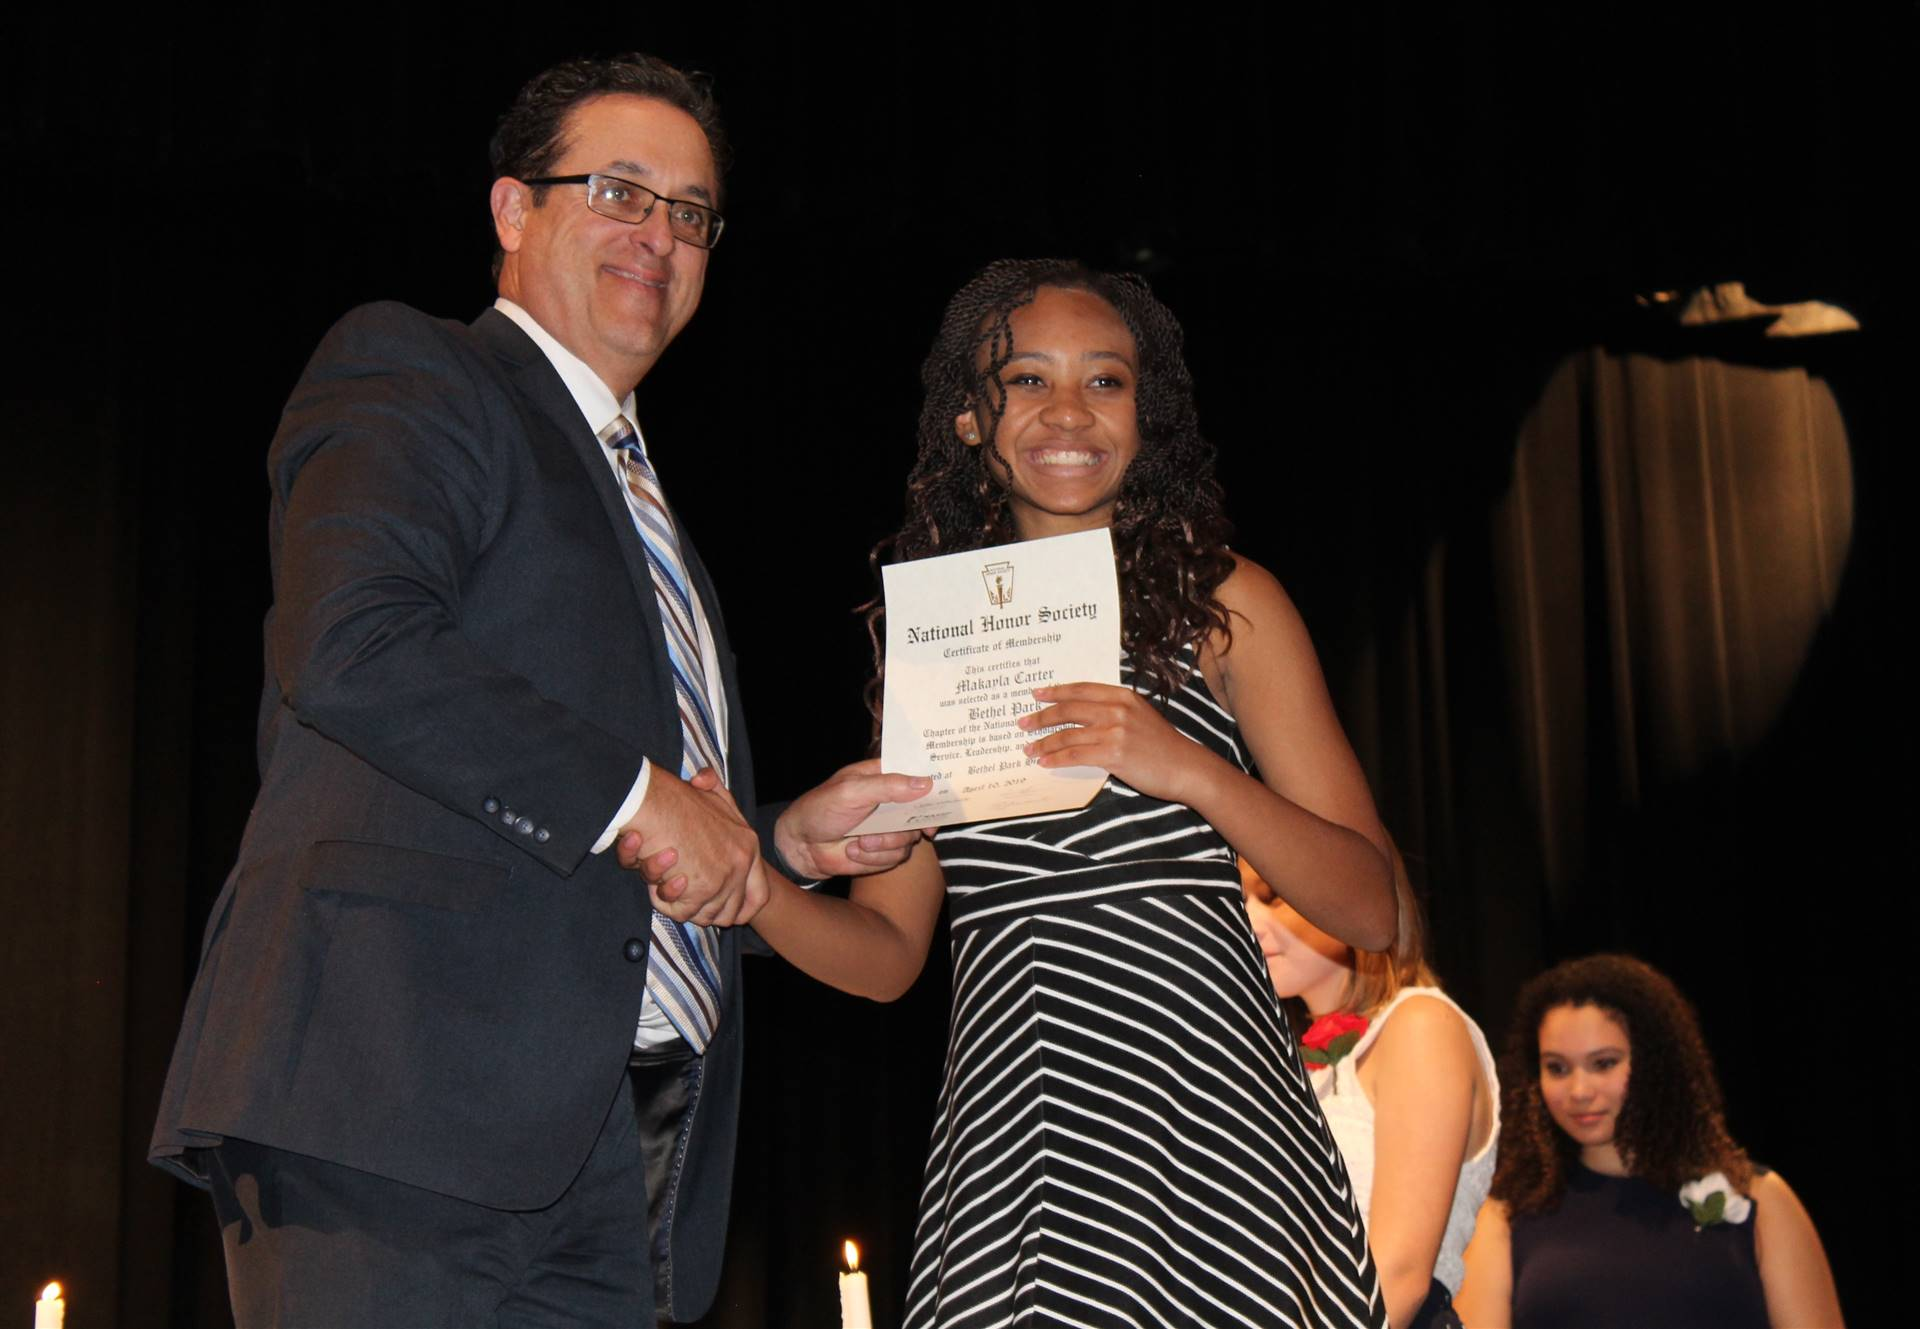 Student receiving her National Honor Society Induction certificate